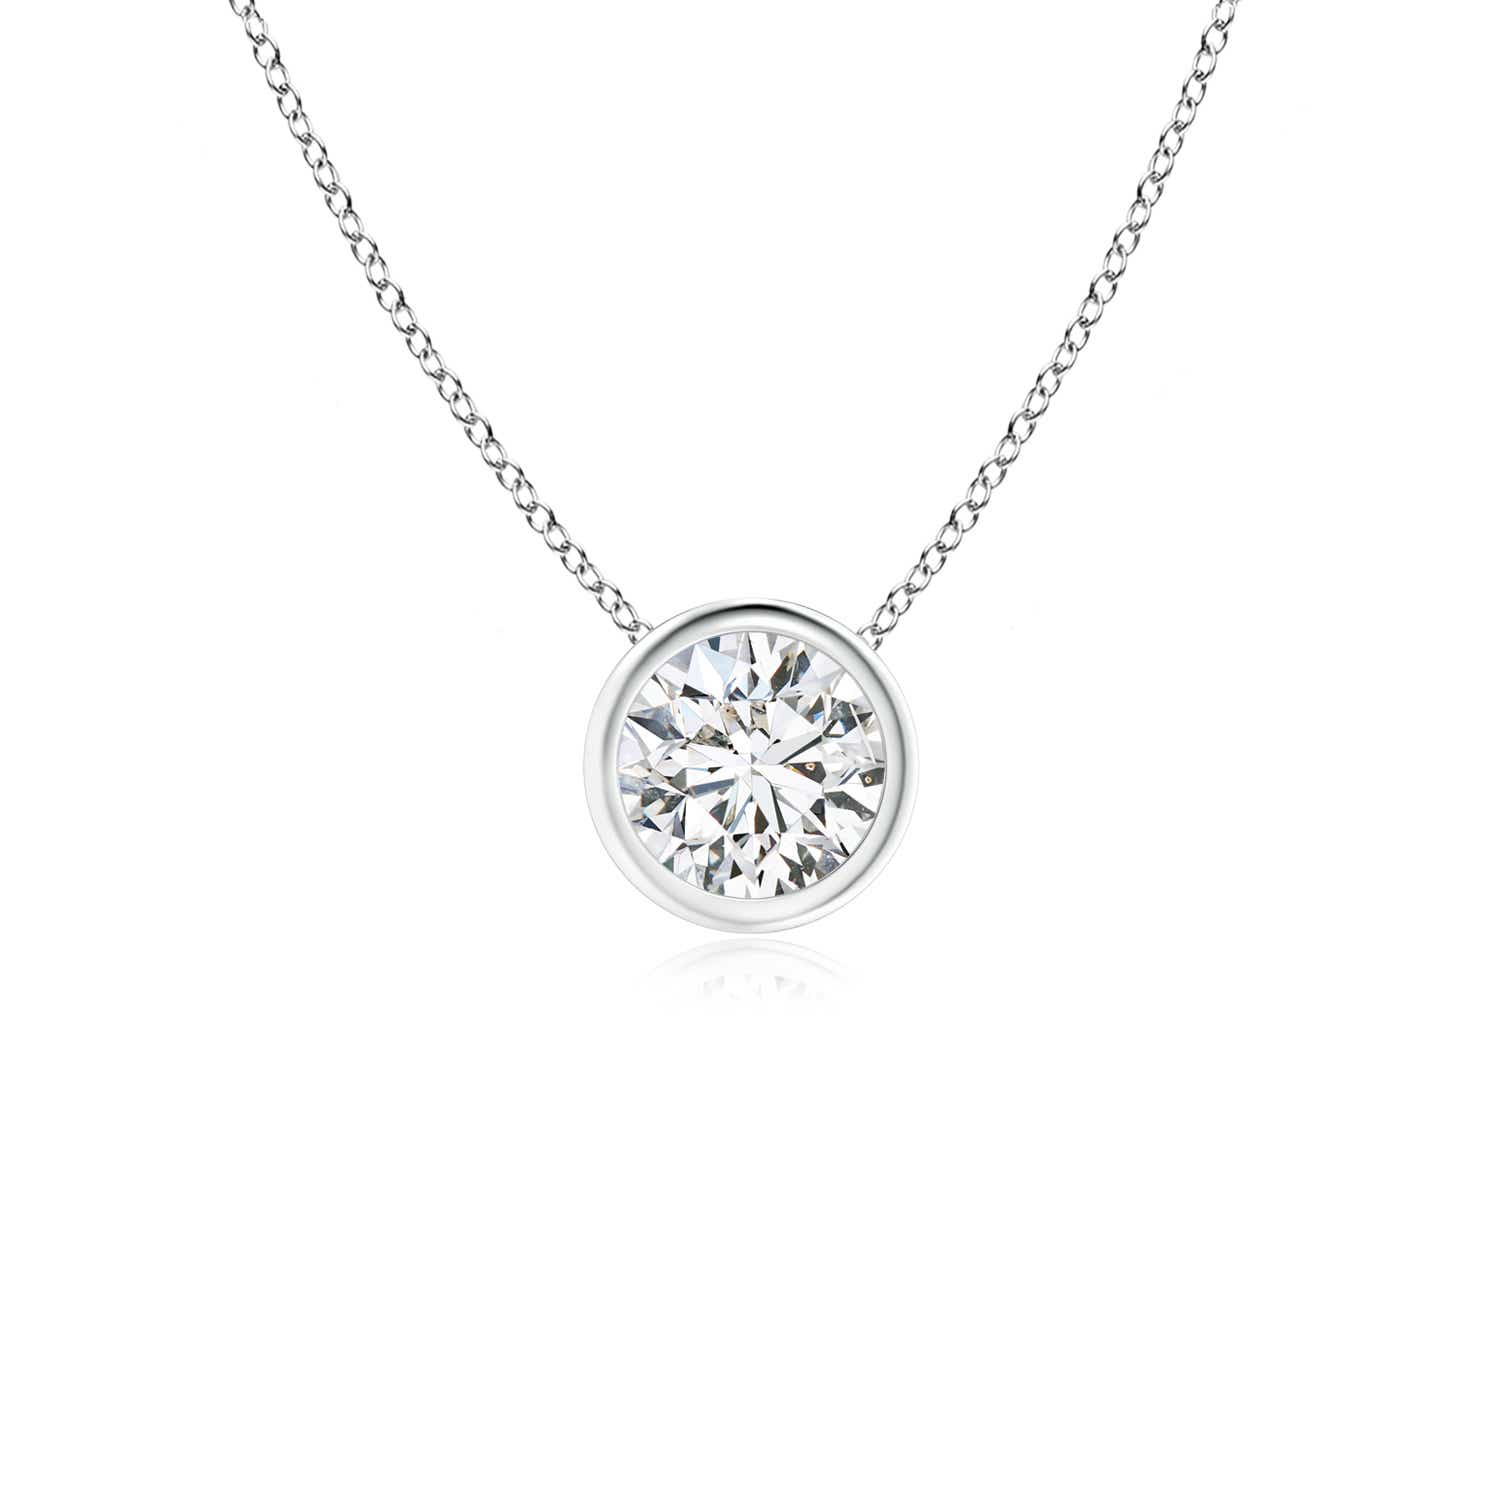 Diamond pendant necklaces angara bezel set round diamond solitaire pendant audiocablefo